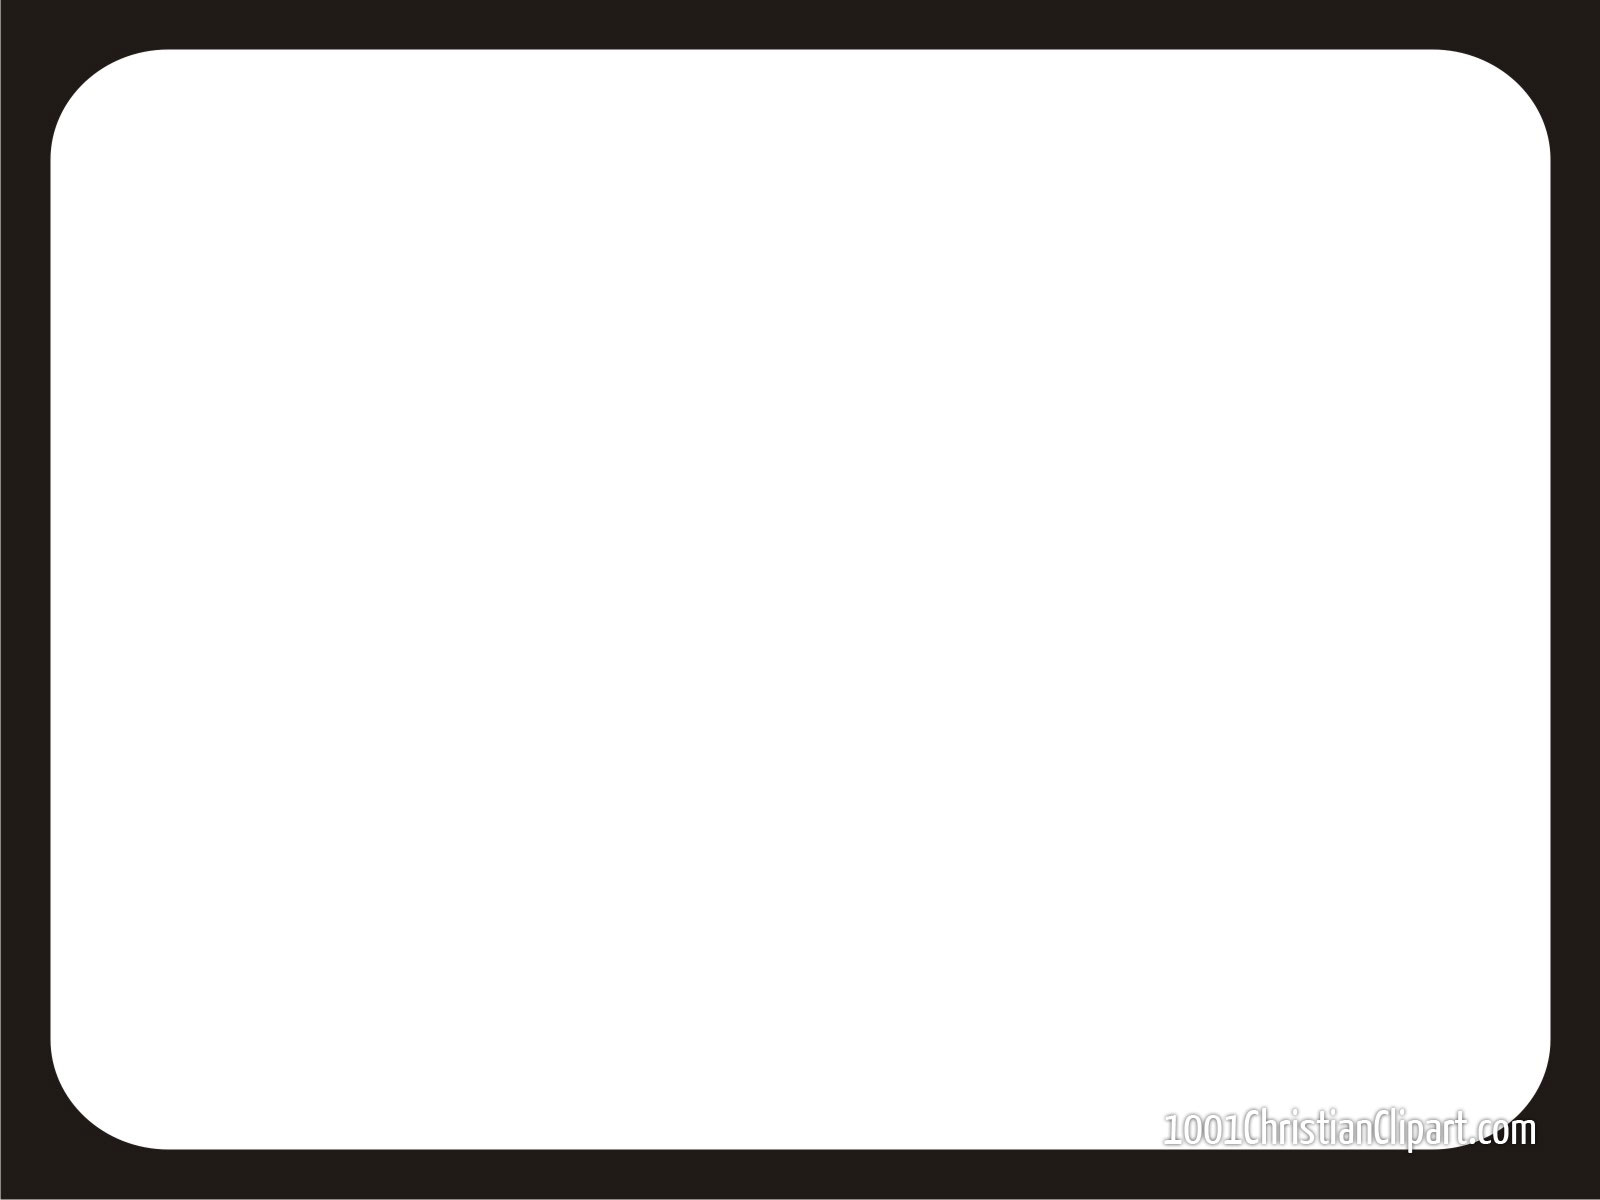 Simple Black Border | Free Images at Clker.com - vector ...